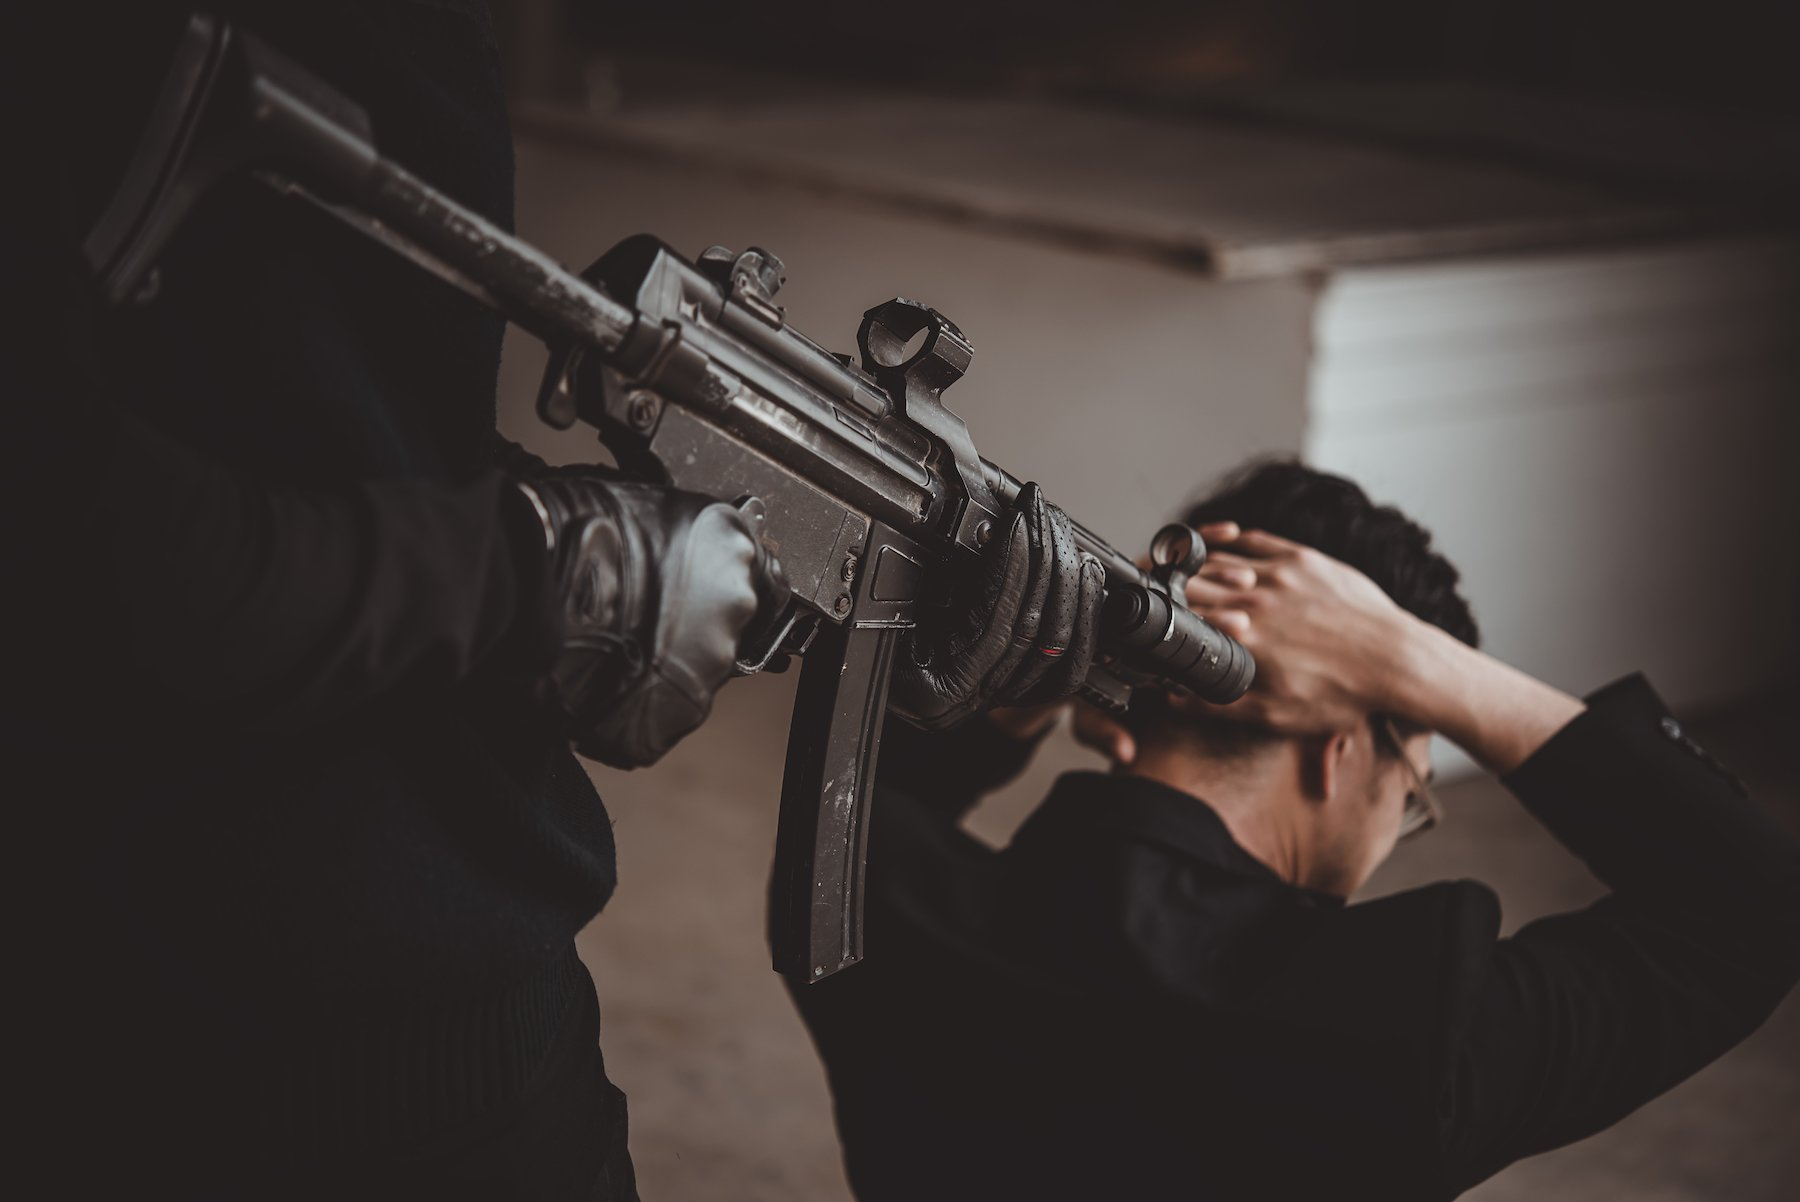 How to Survive a Hostage Situation or Terrorist Attack